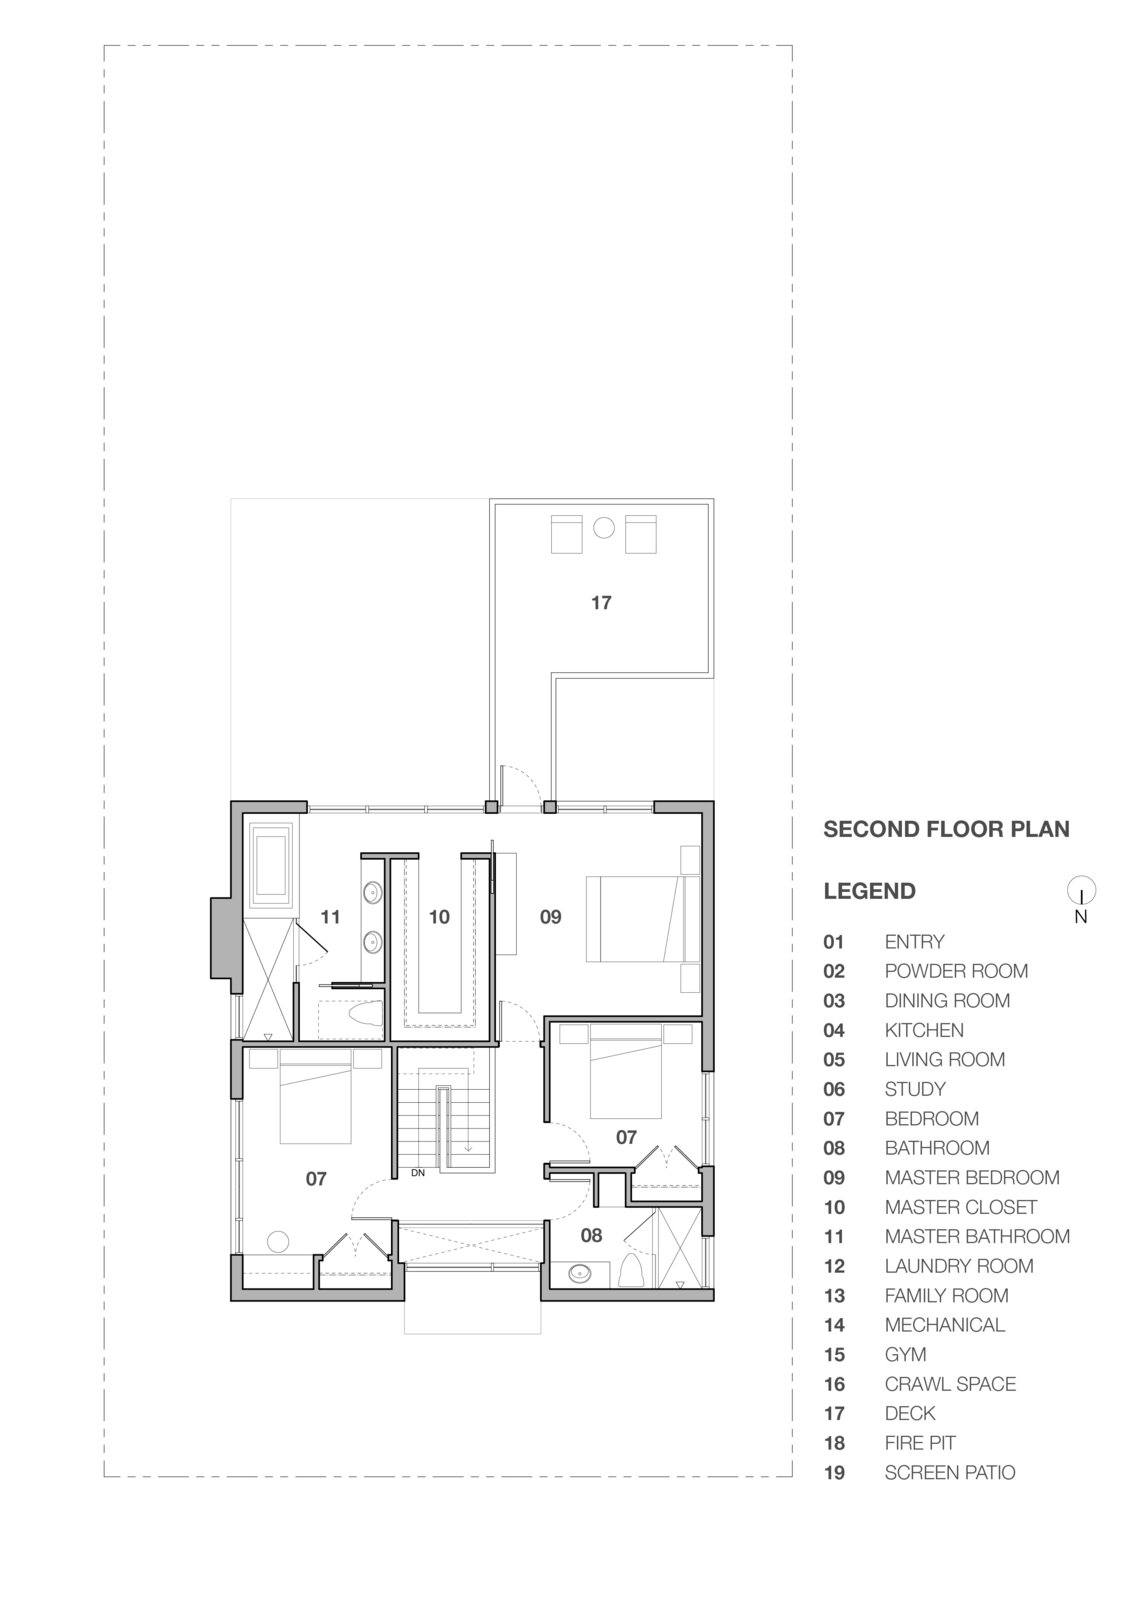 Second floor plan of Stephenson House by Assembledge+ and Fowles Studio